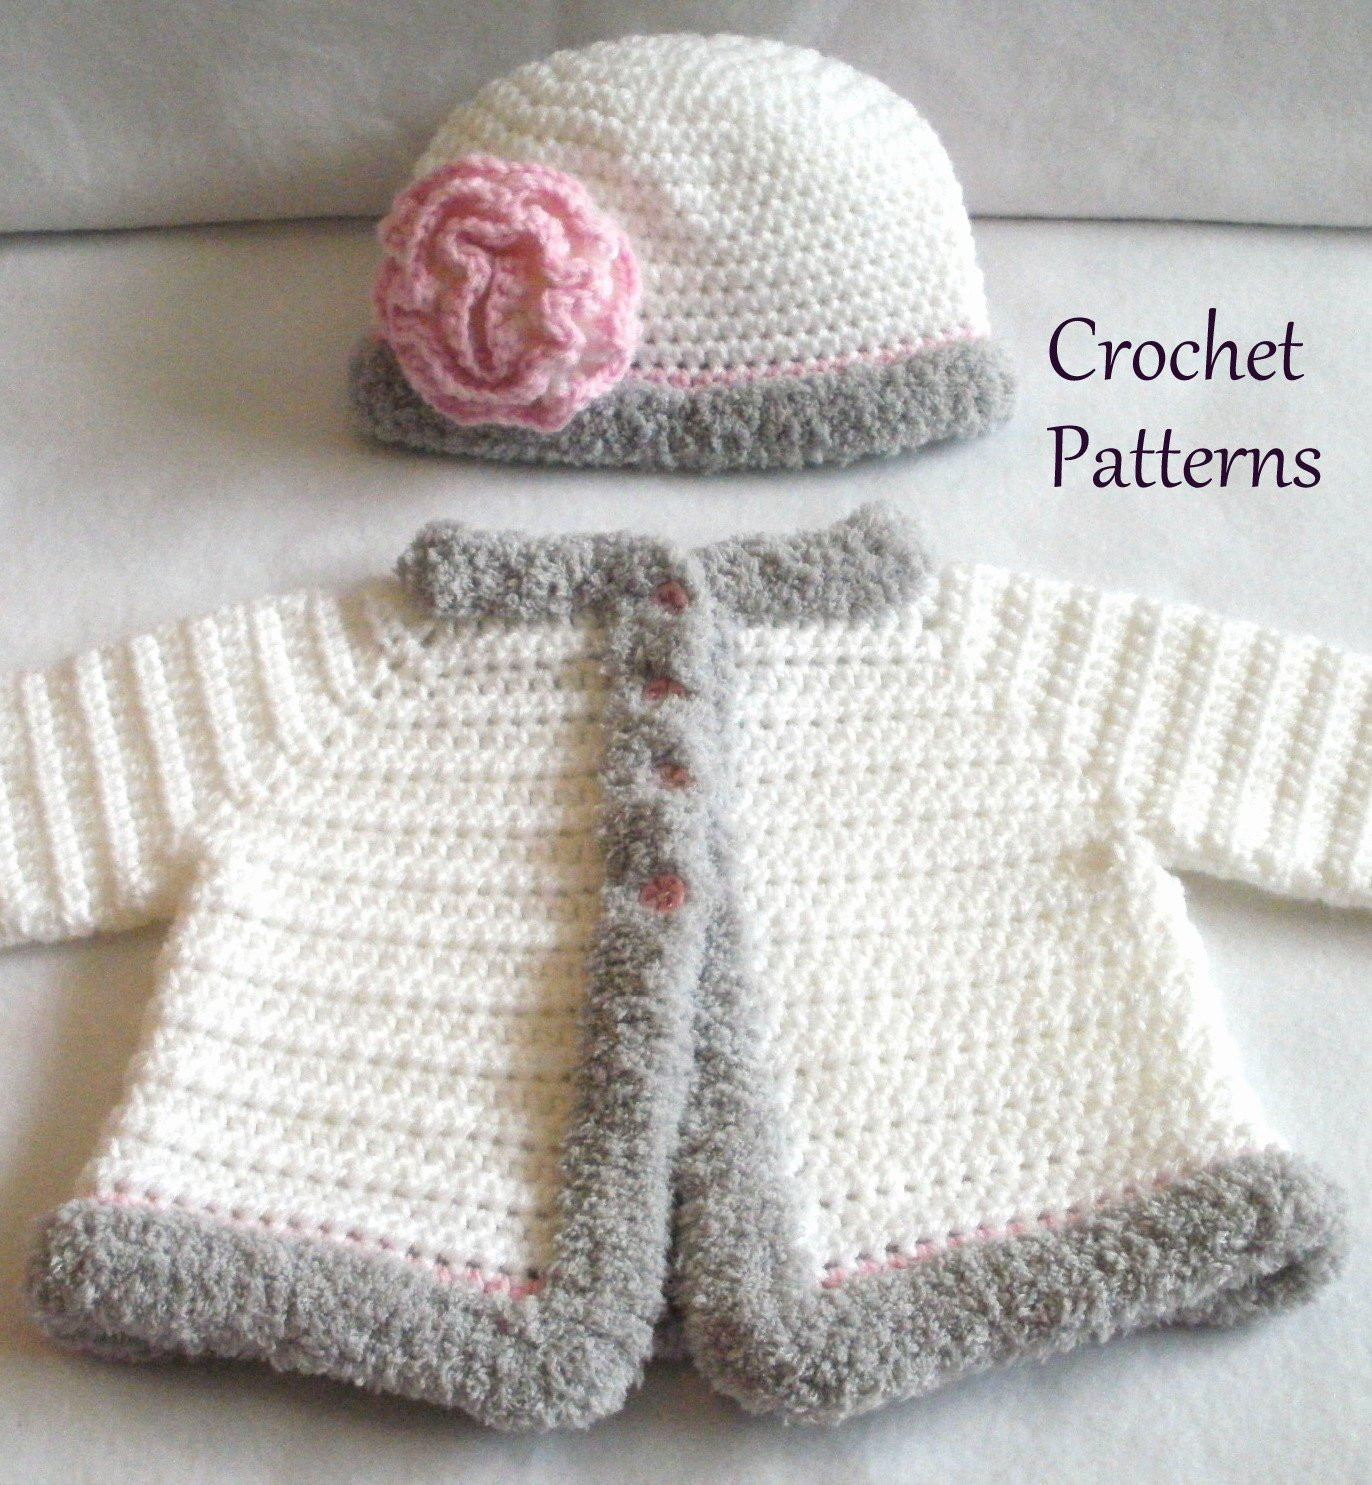 Easy Baby Sweater Crochet Pattern Lovely Crochet Pattern Baby Sweater & Hat Patterns the Laura Baby Of Great 47 Photos Easy Baby Sweater Crochet Pattern